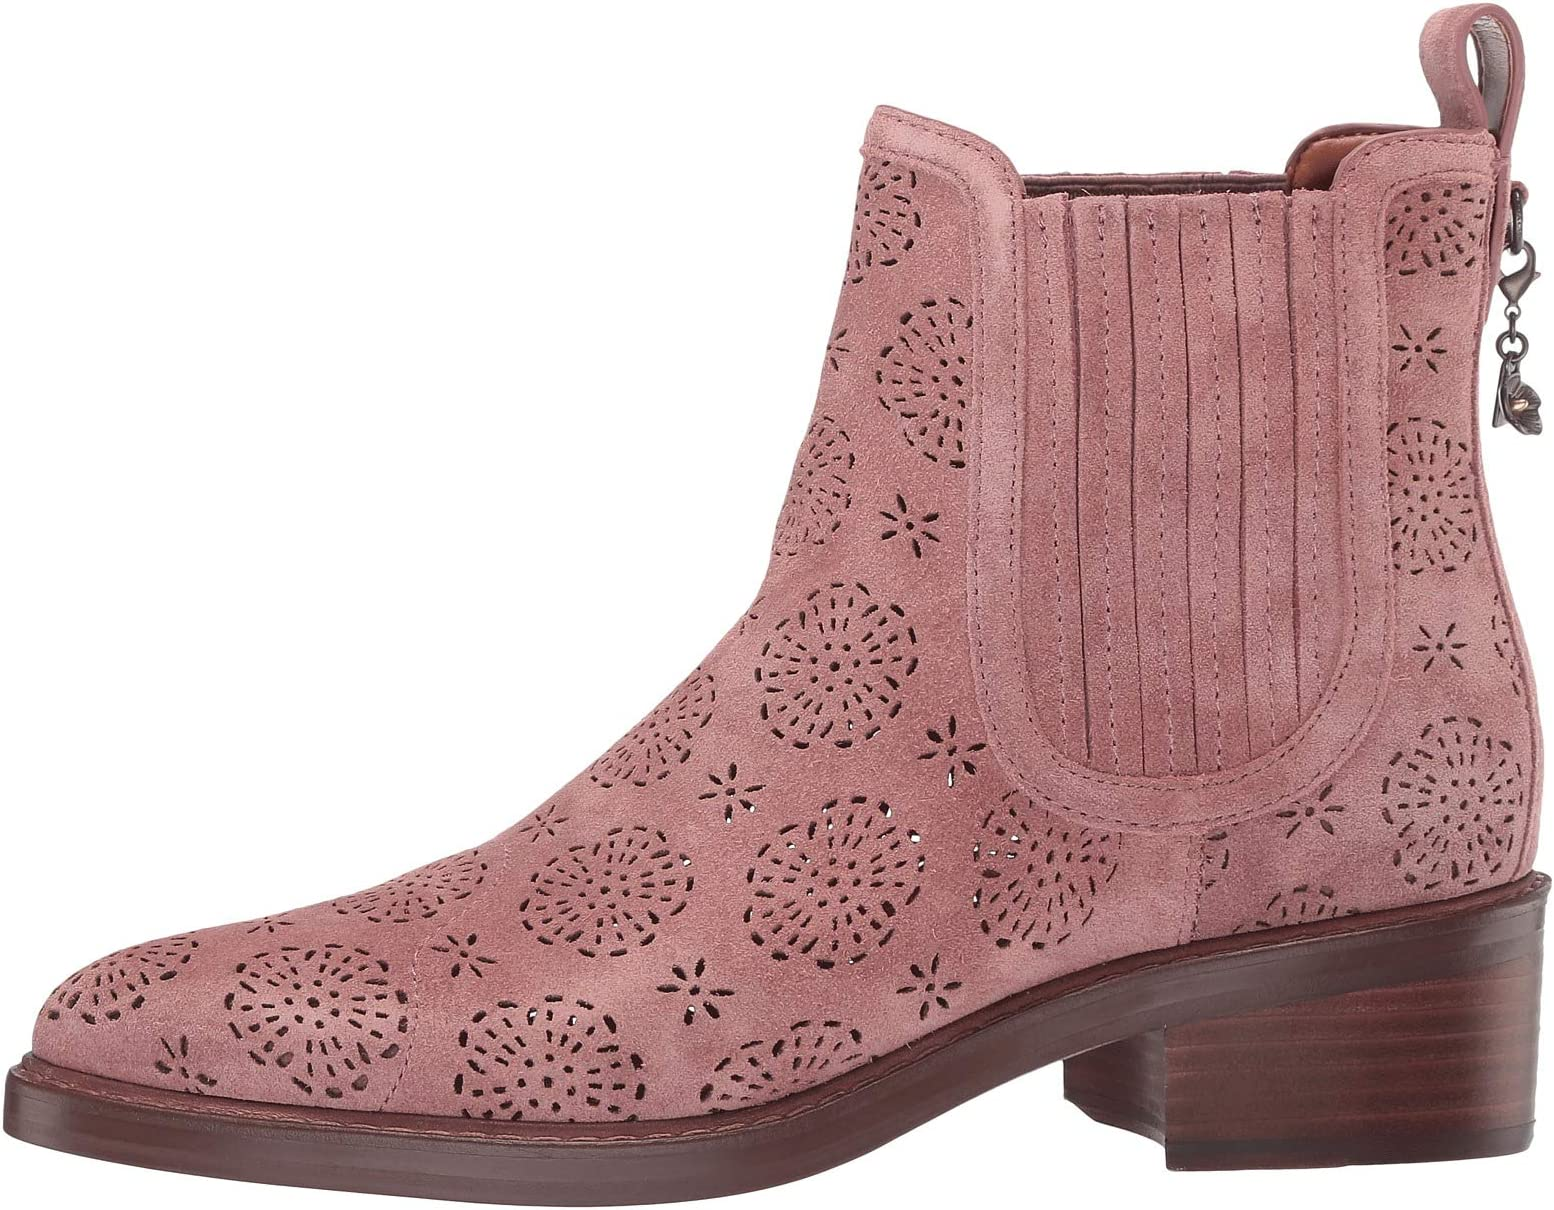 COACH Bowery Chelsea Boot with Cut Out Tea Rose | Women's shoes | 2020 Newest